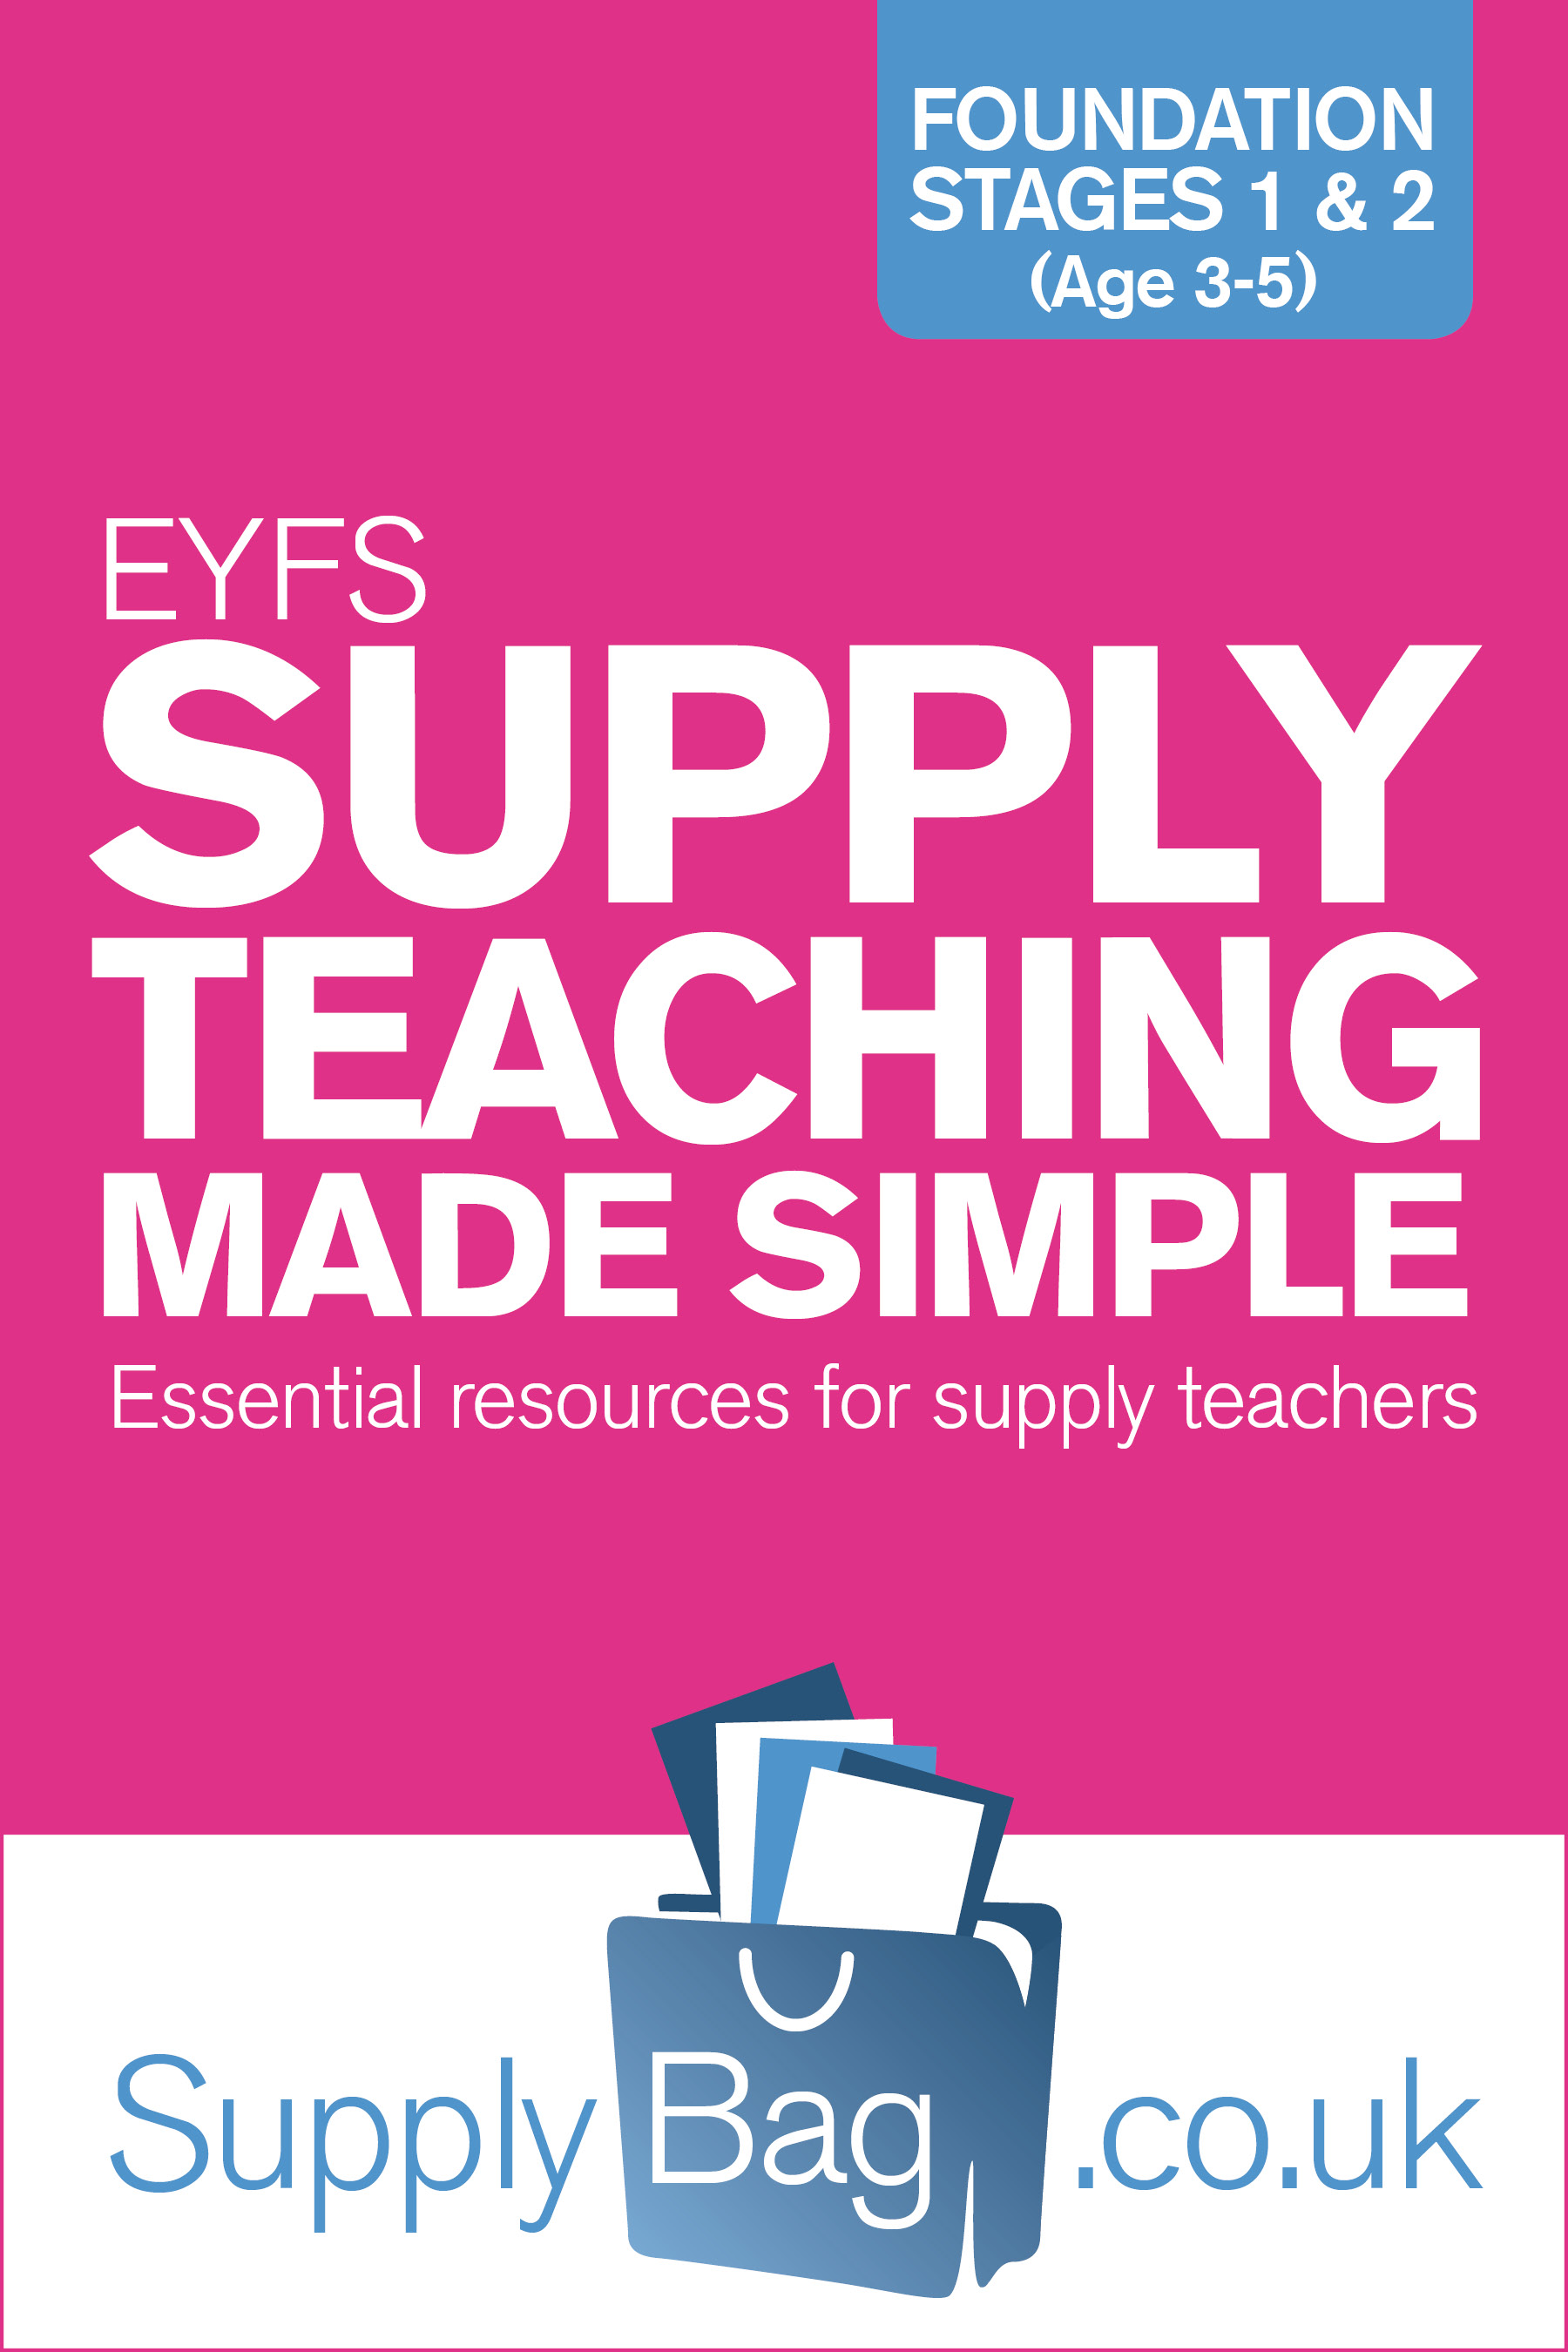 EYFS Supply Teaching made simple